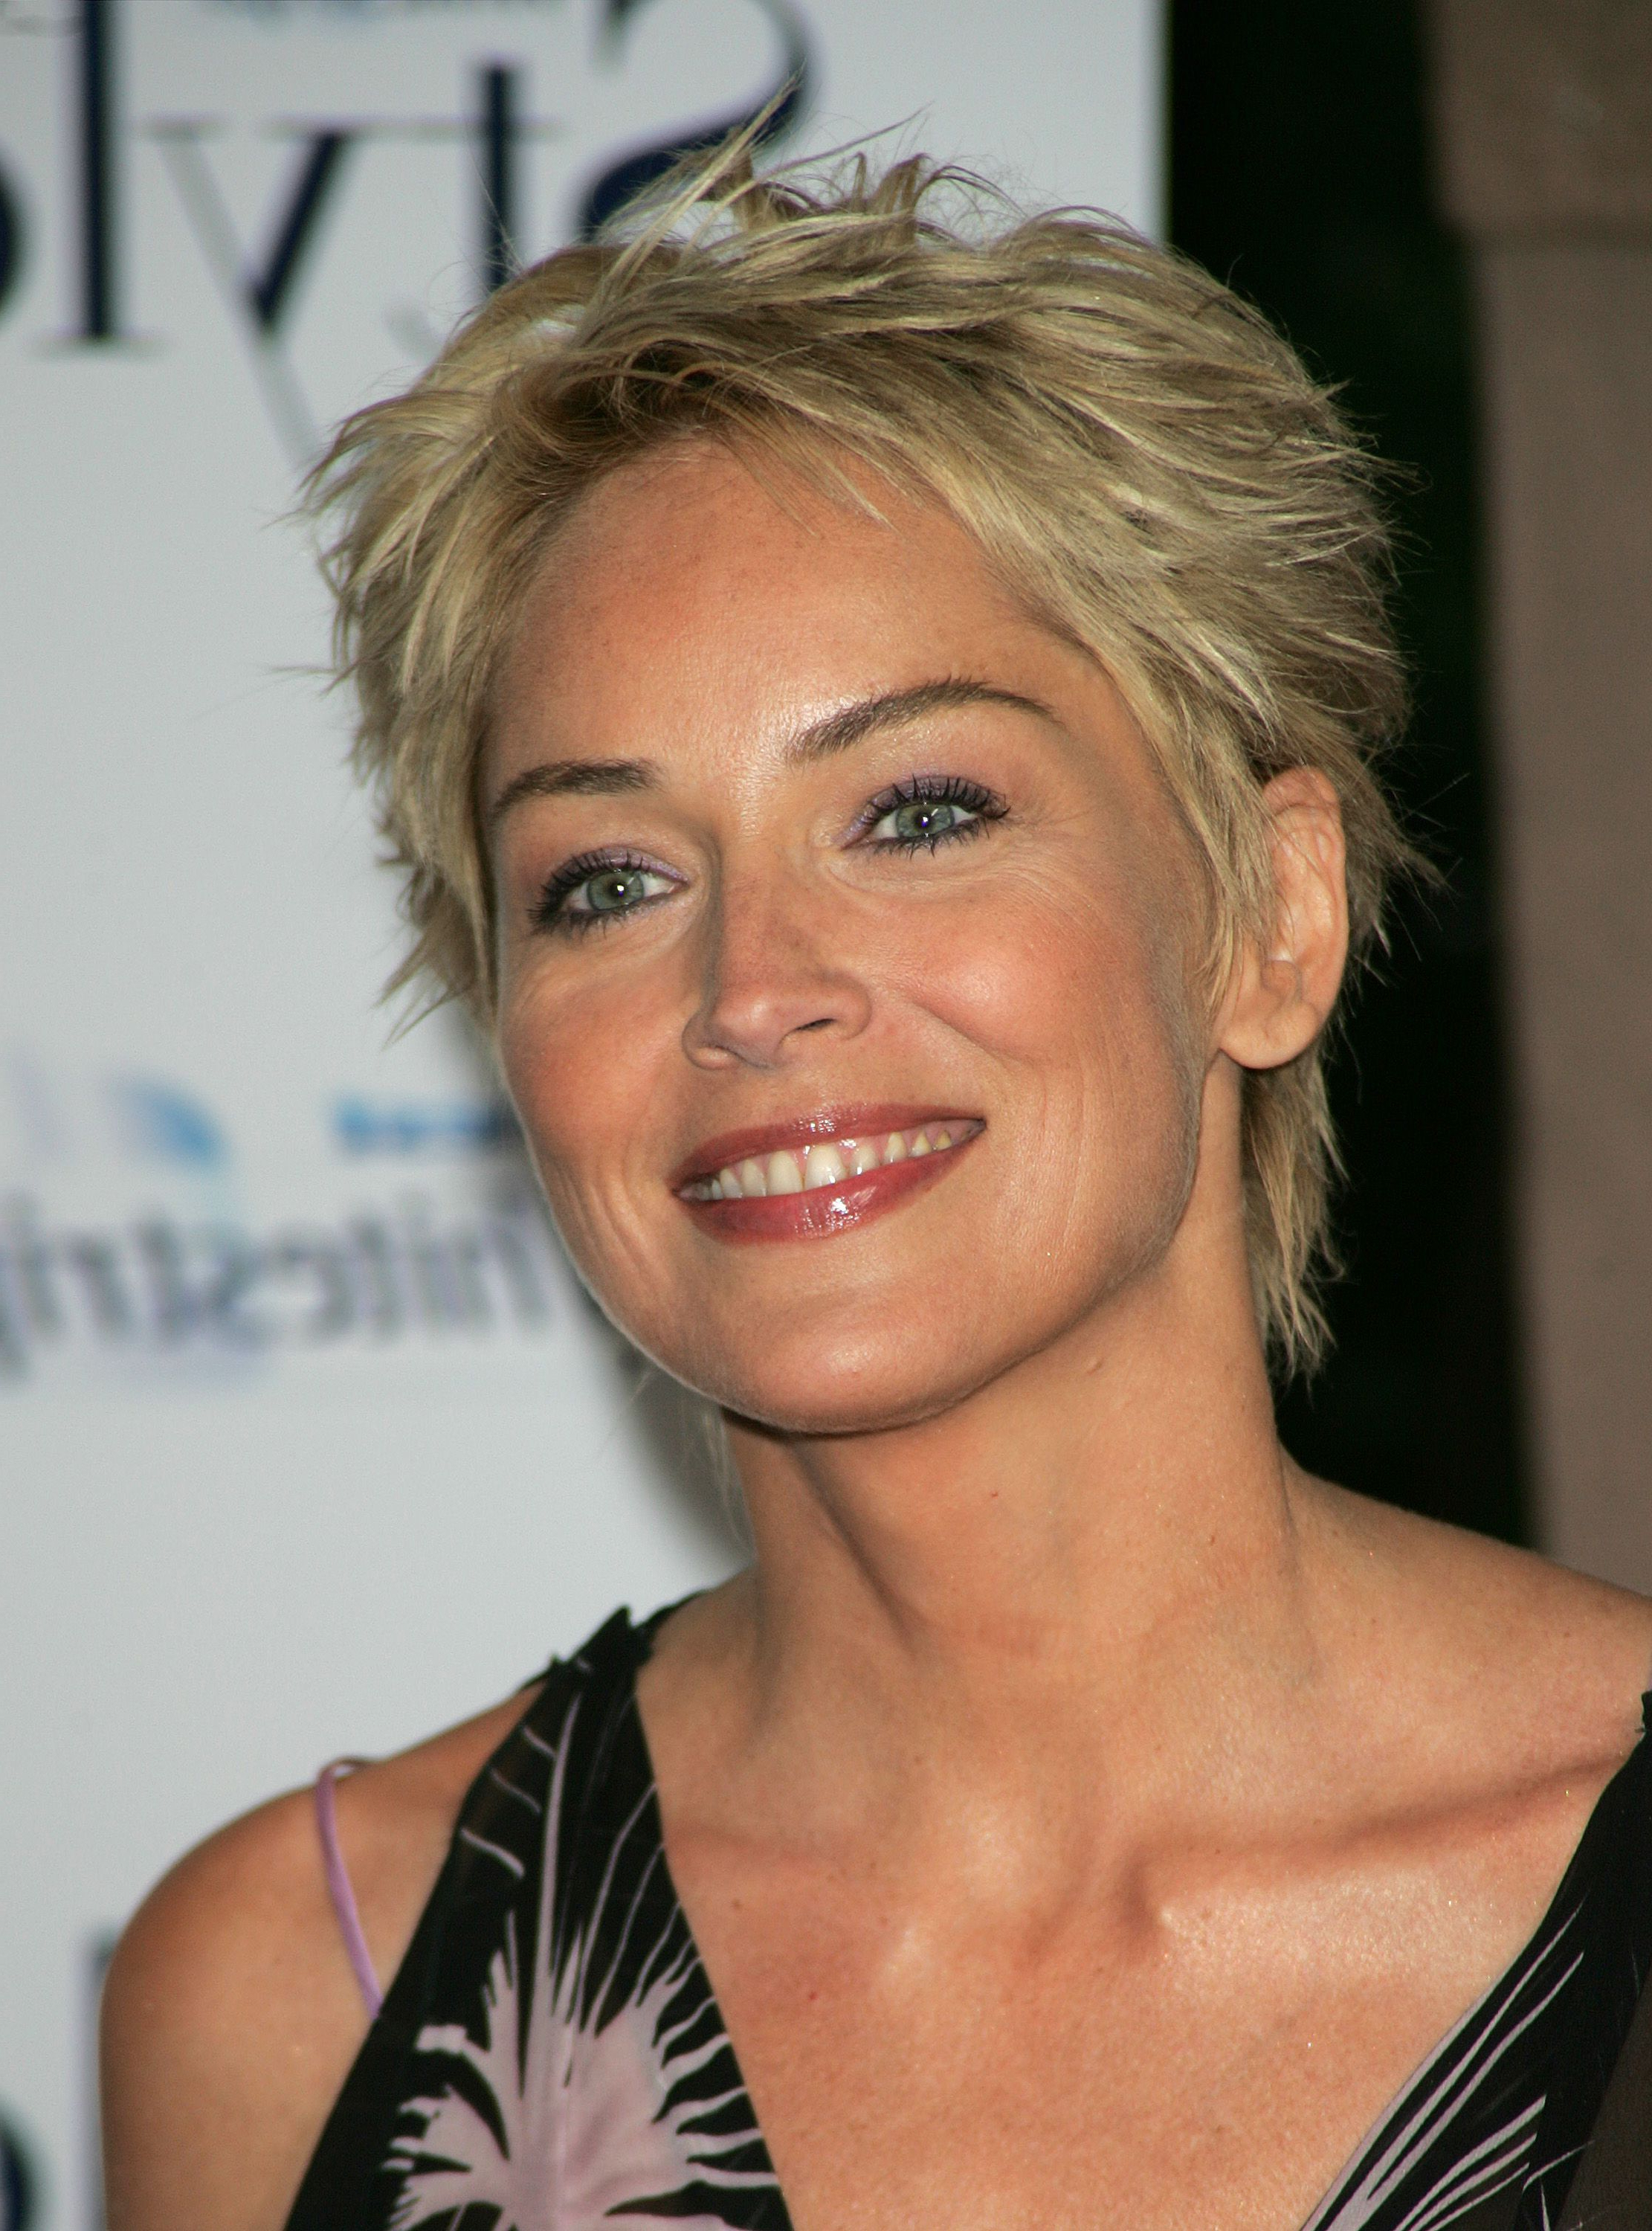 Sharon Stone Short Hairstyles – Hairstyle For Women & Man Within Sharon Stone Short Haircuts (View 12 of 25)